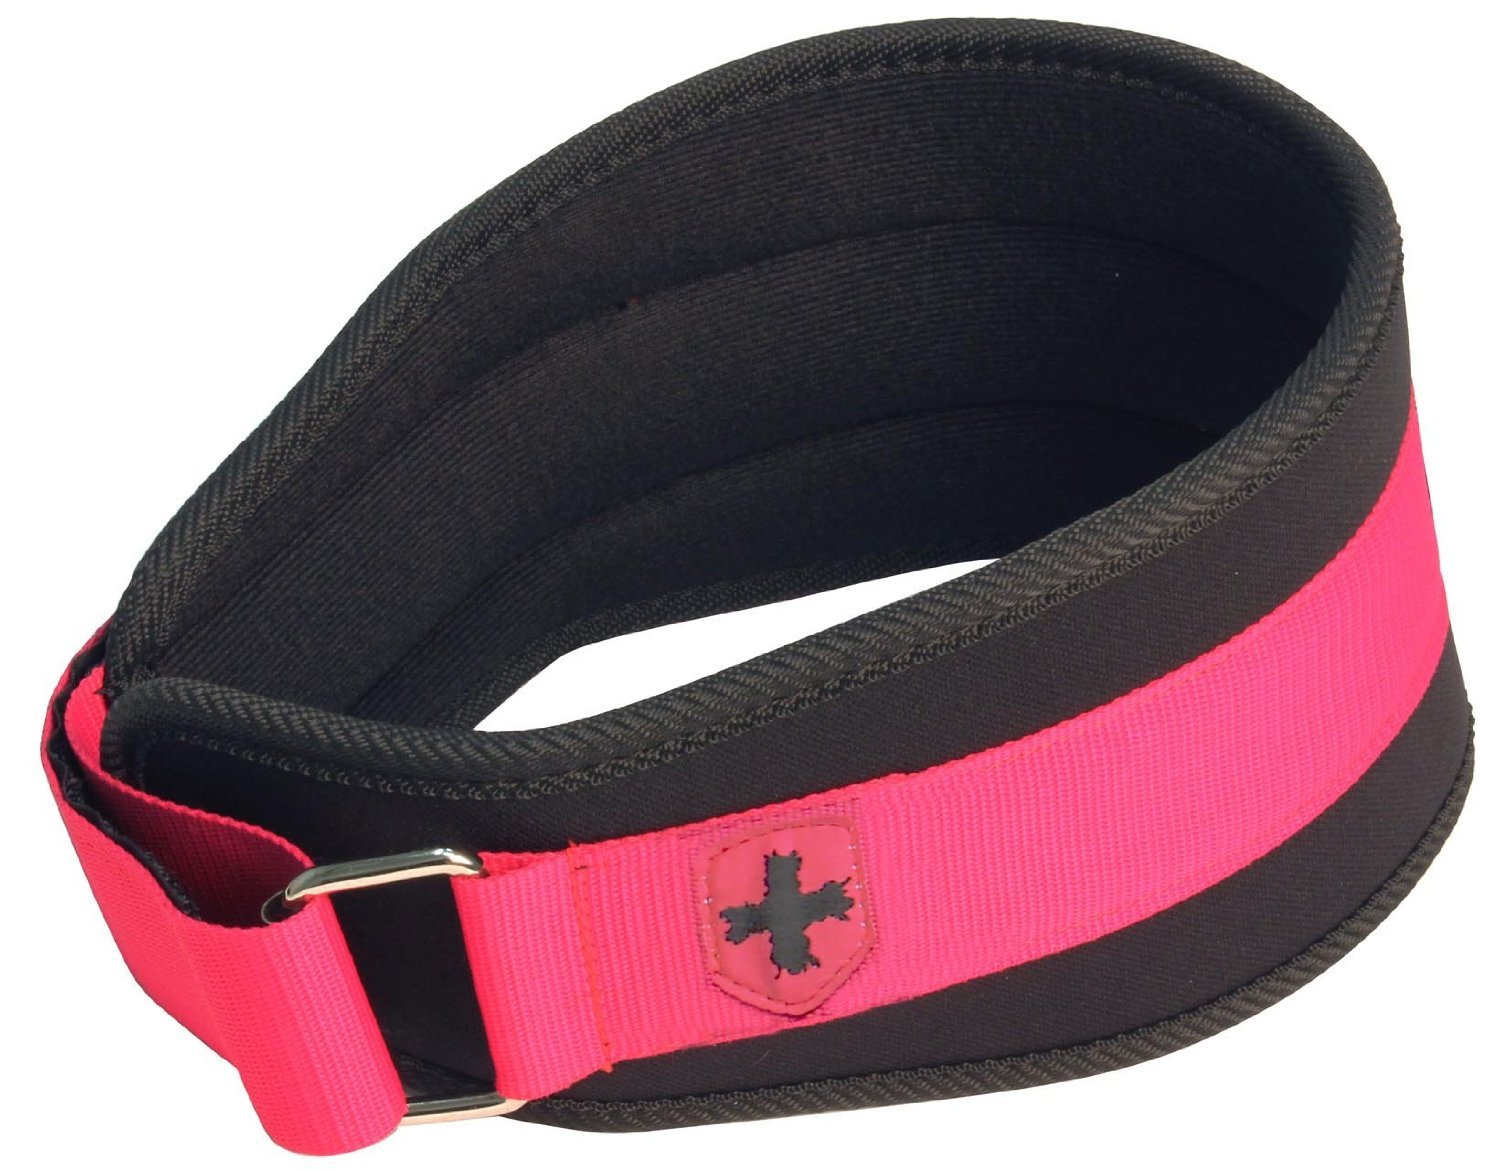 Harbinger Foam Core Women's Lifting Belt